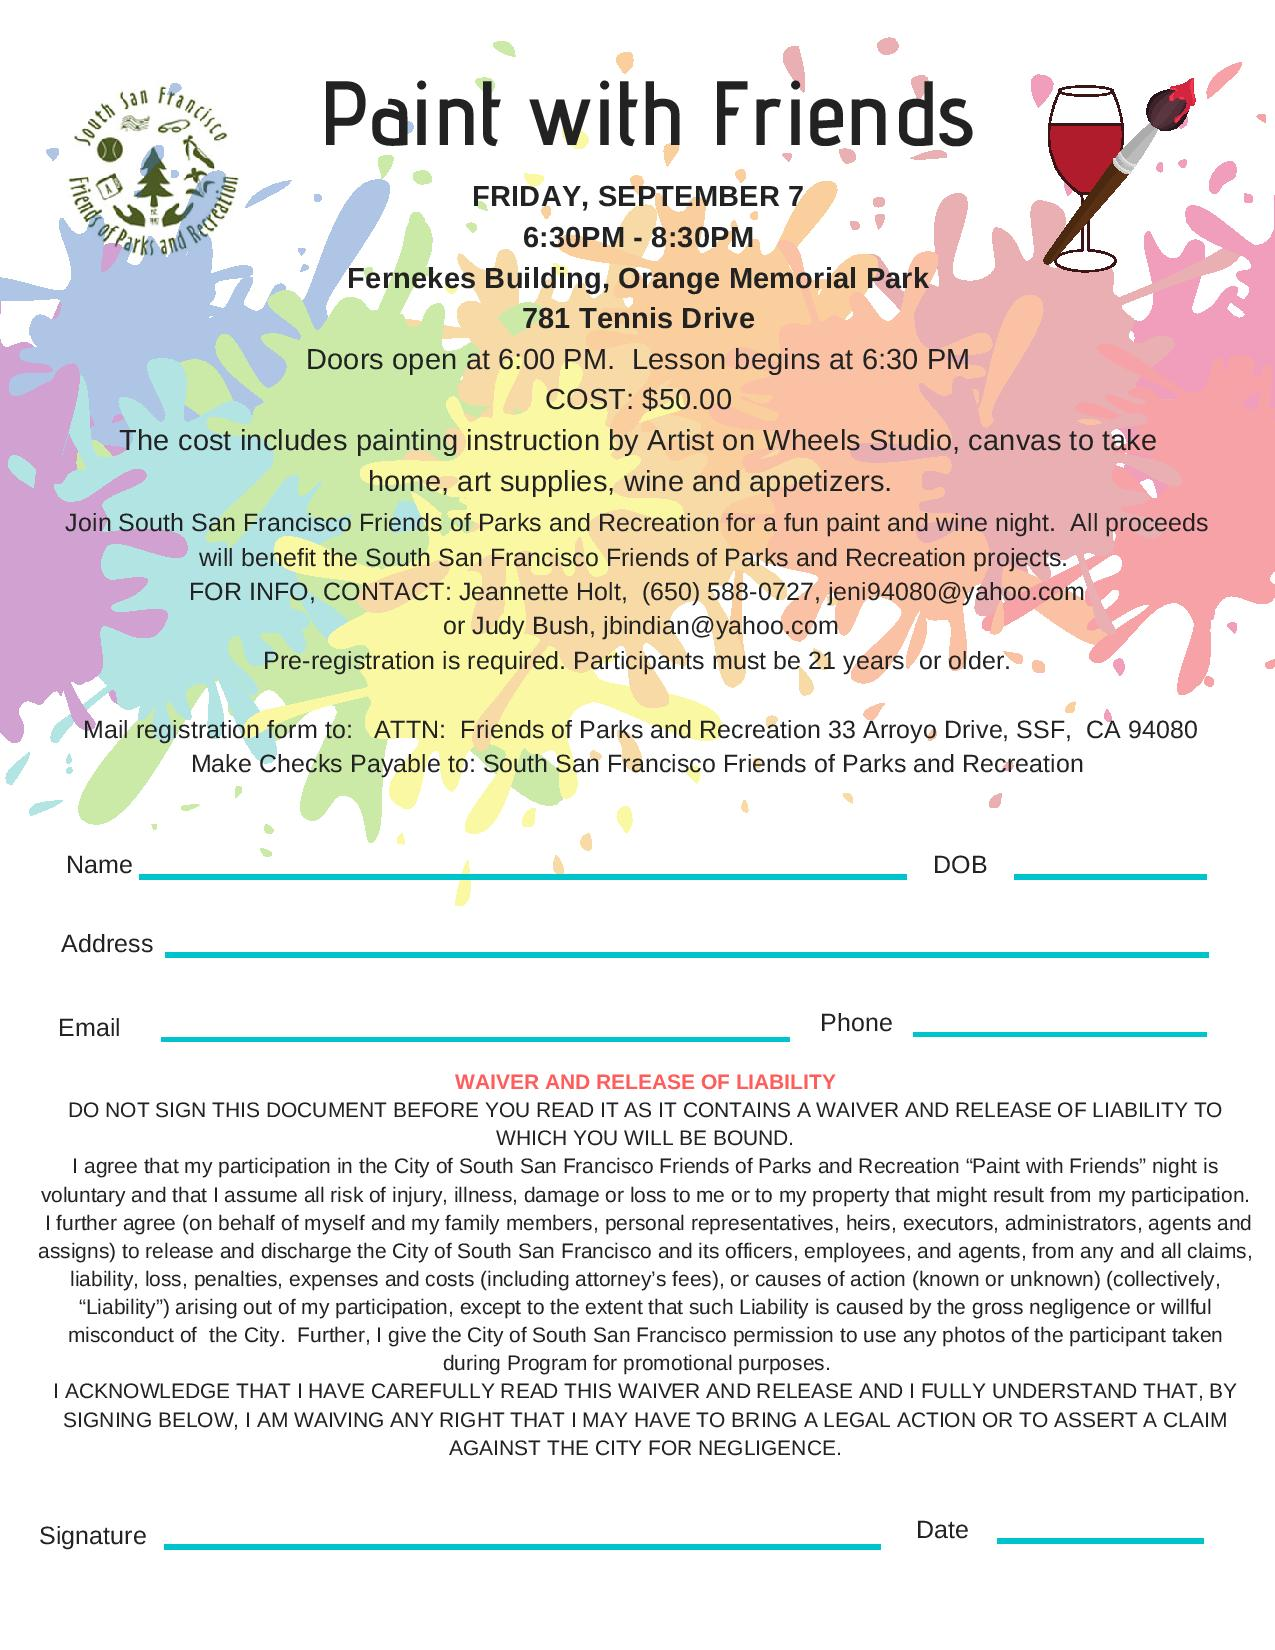 Friends of Parks and Recreation Announce Paint With Friends Night Friday September 7th at Orange Memorial Park